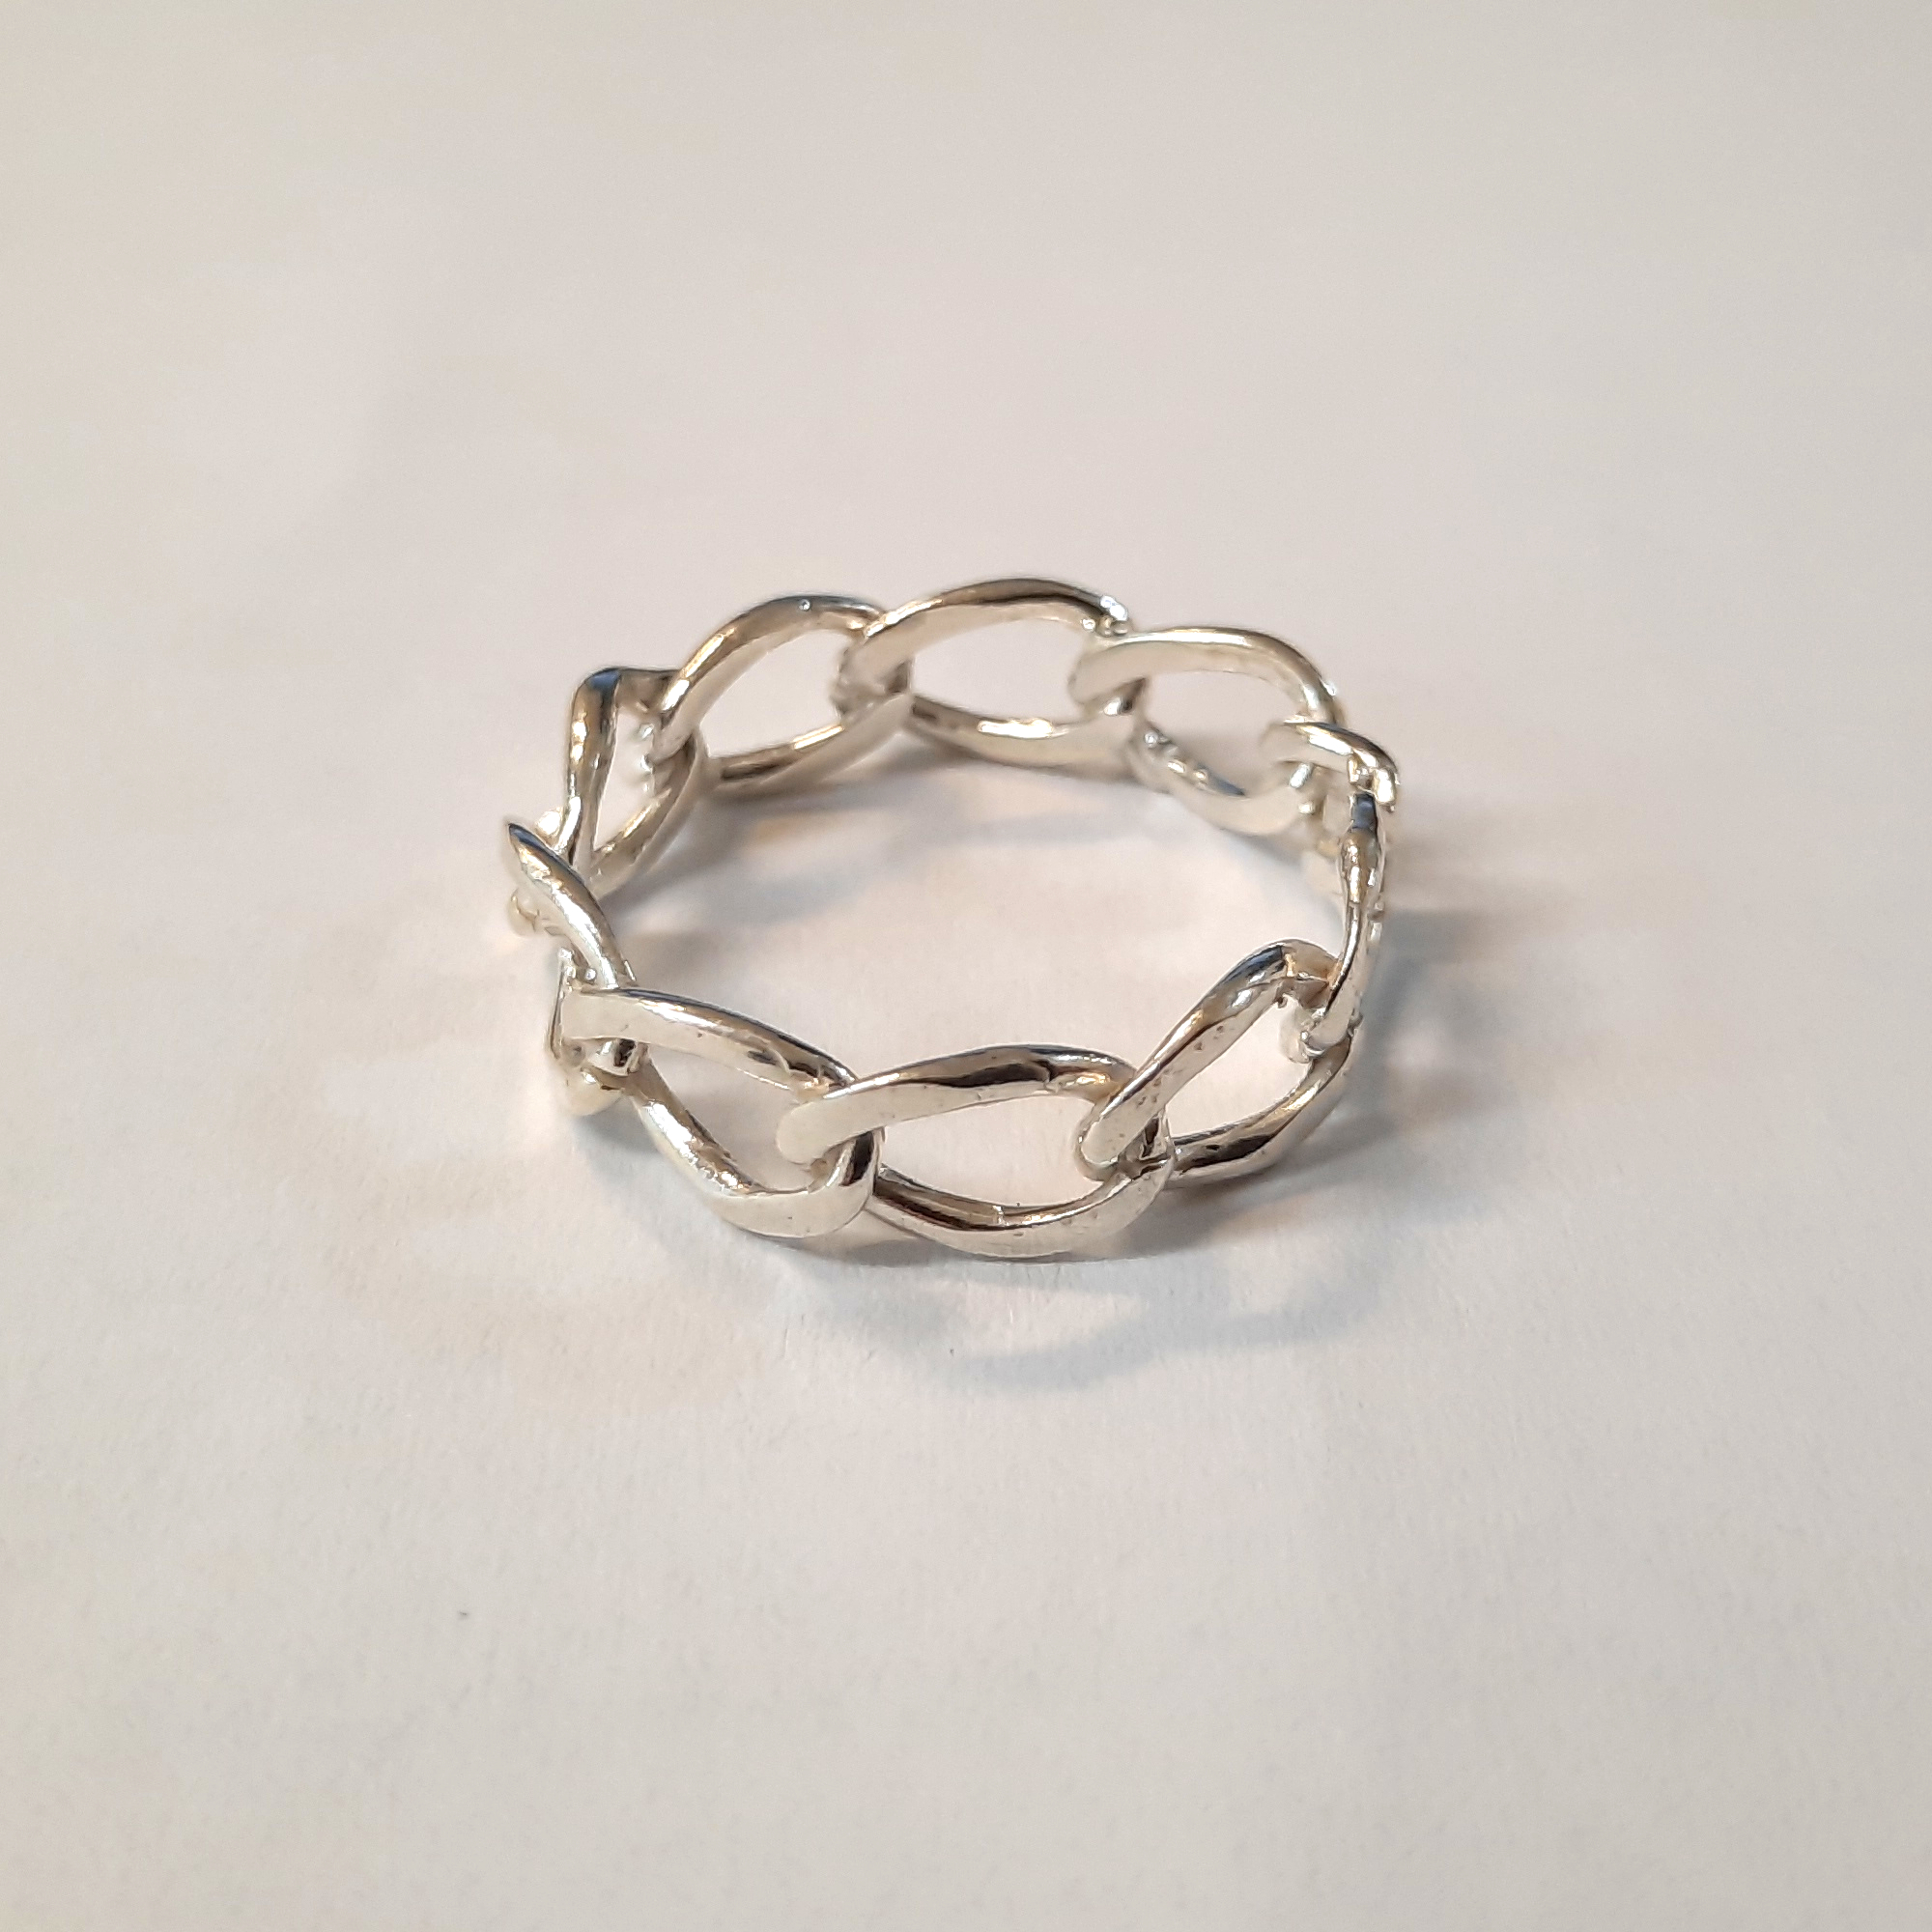 Silver ring - R002189